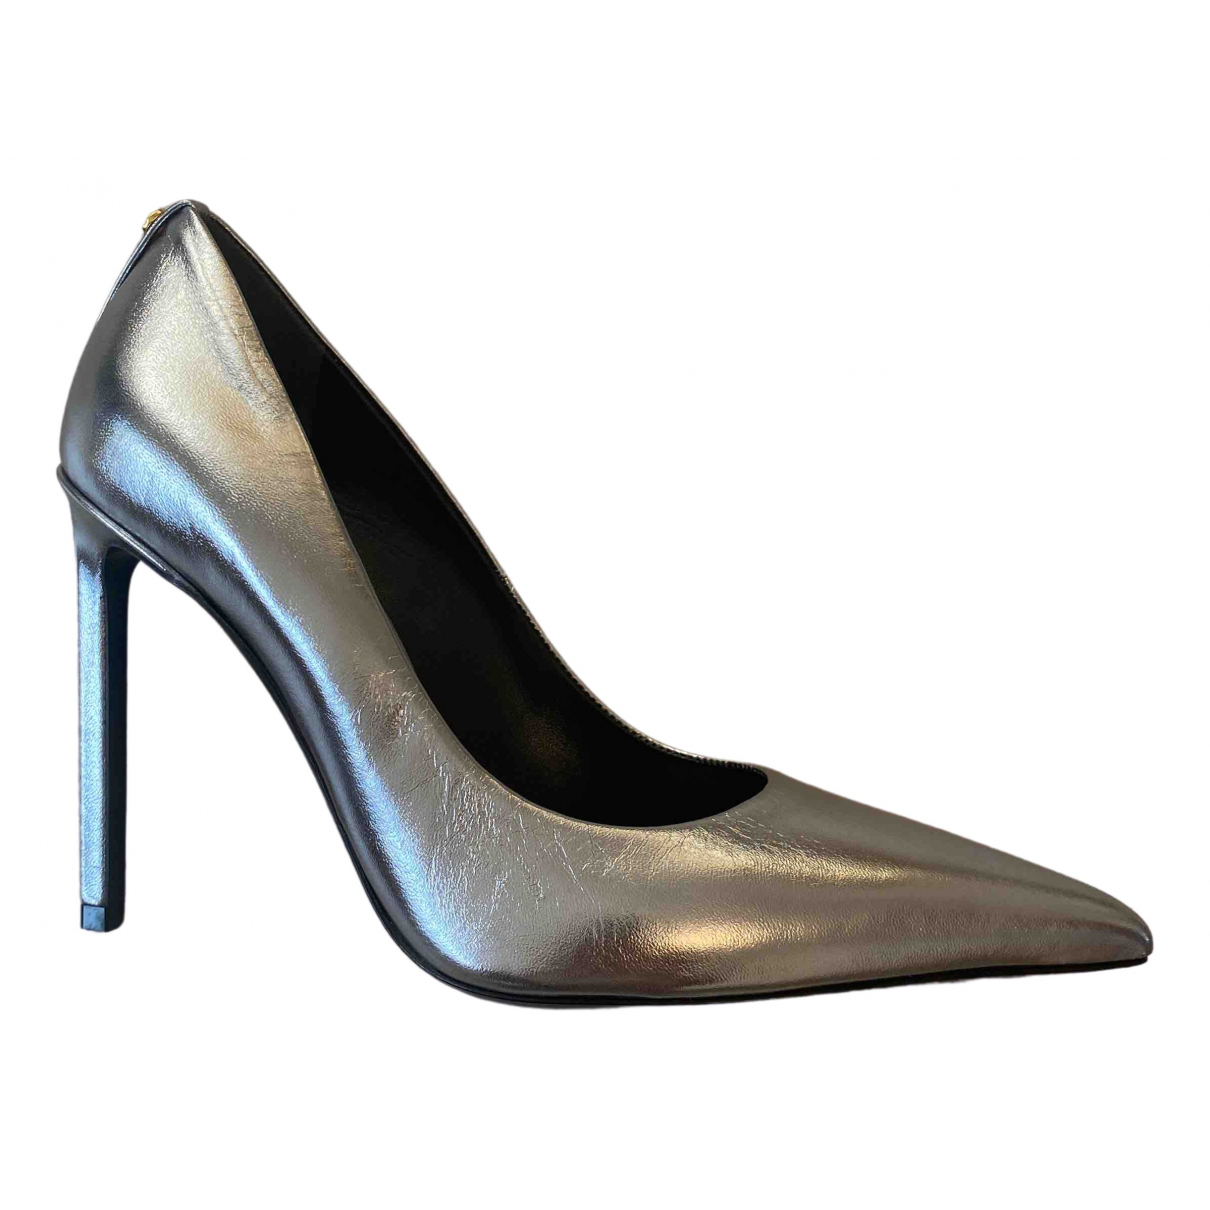 Tom Ford \N Silver Leather Heels for Women 37.5 EU